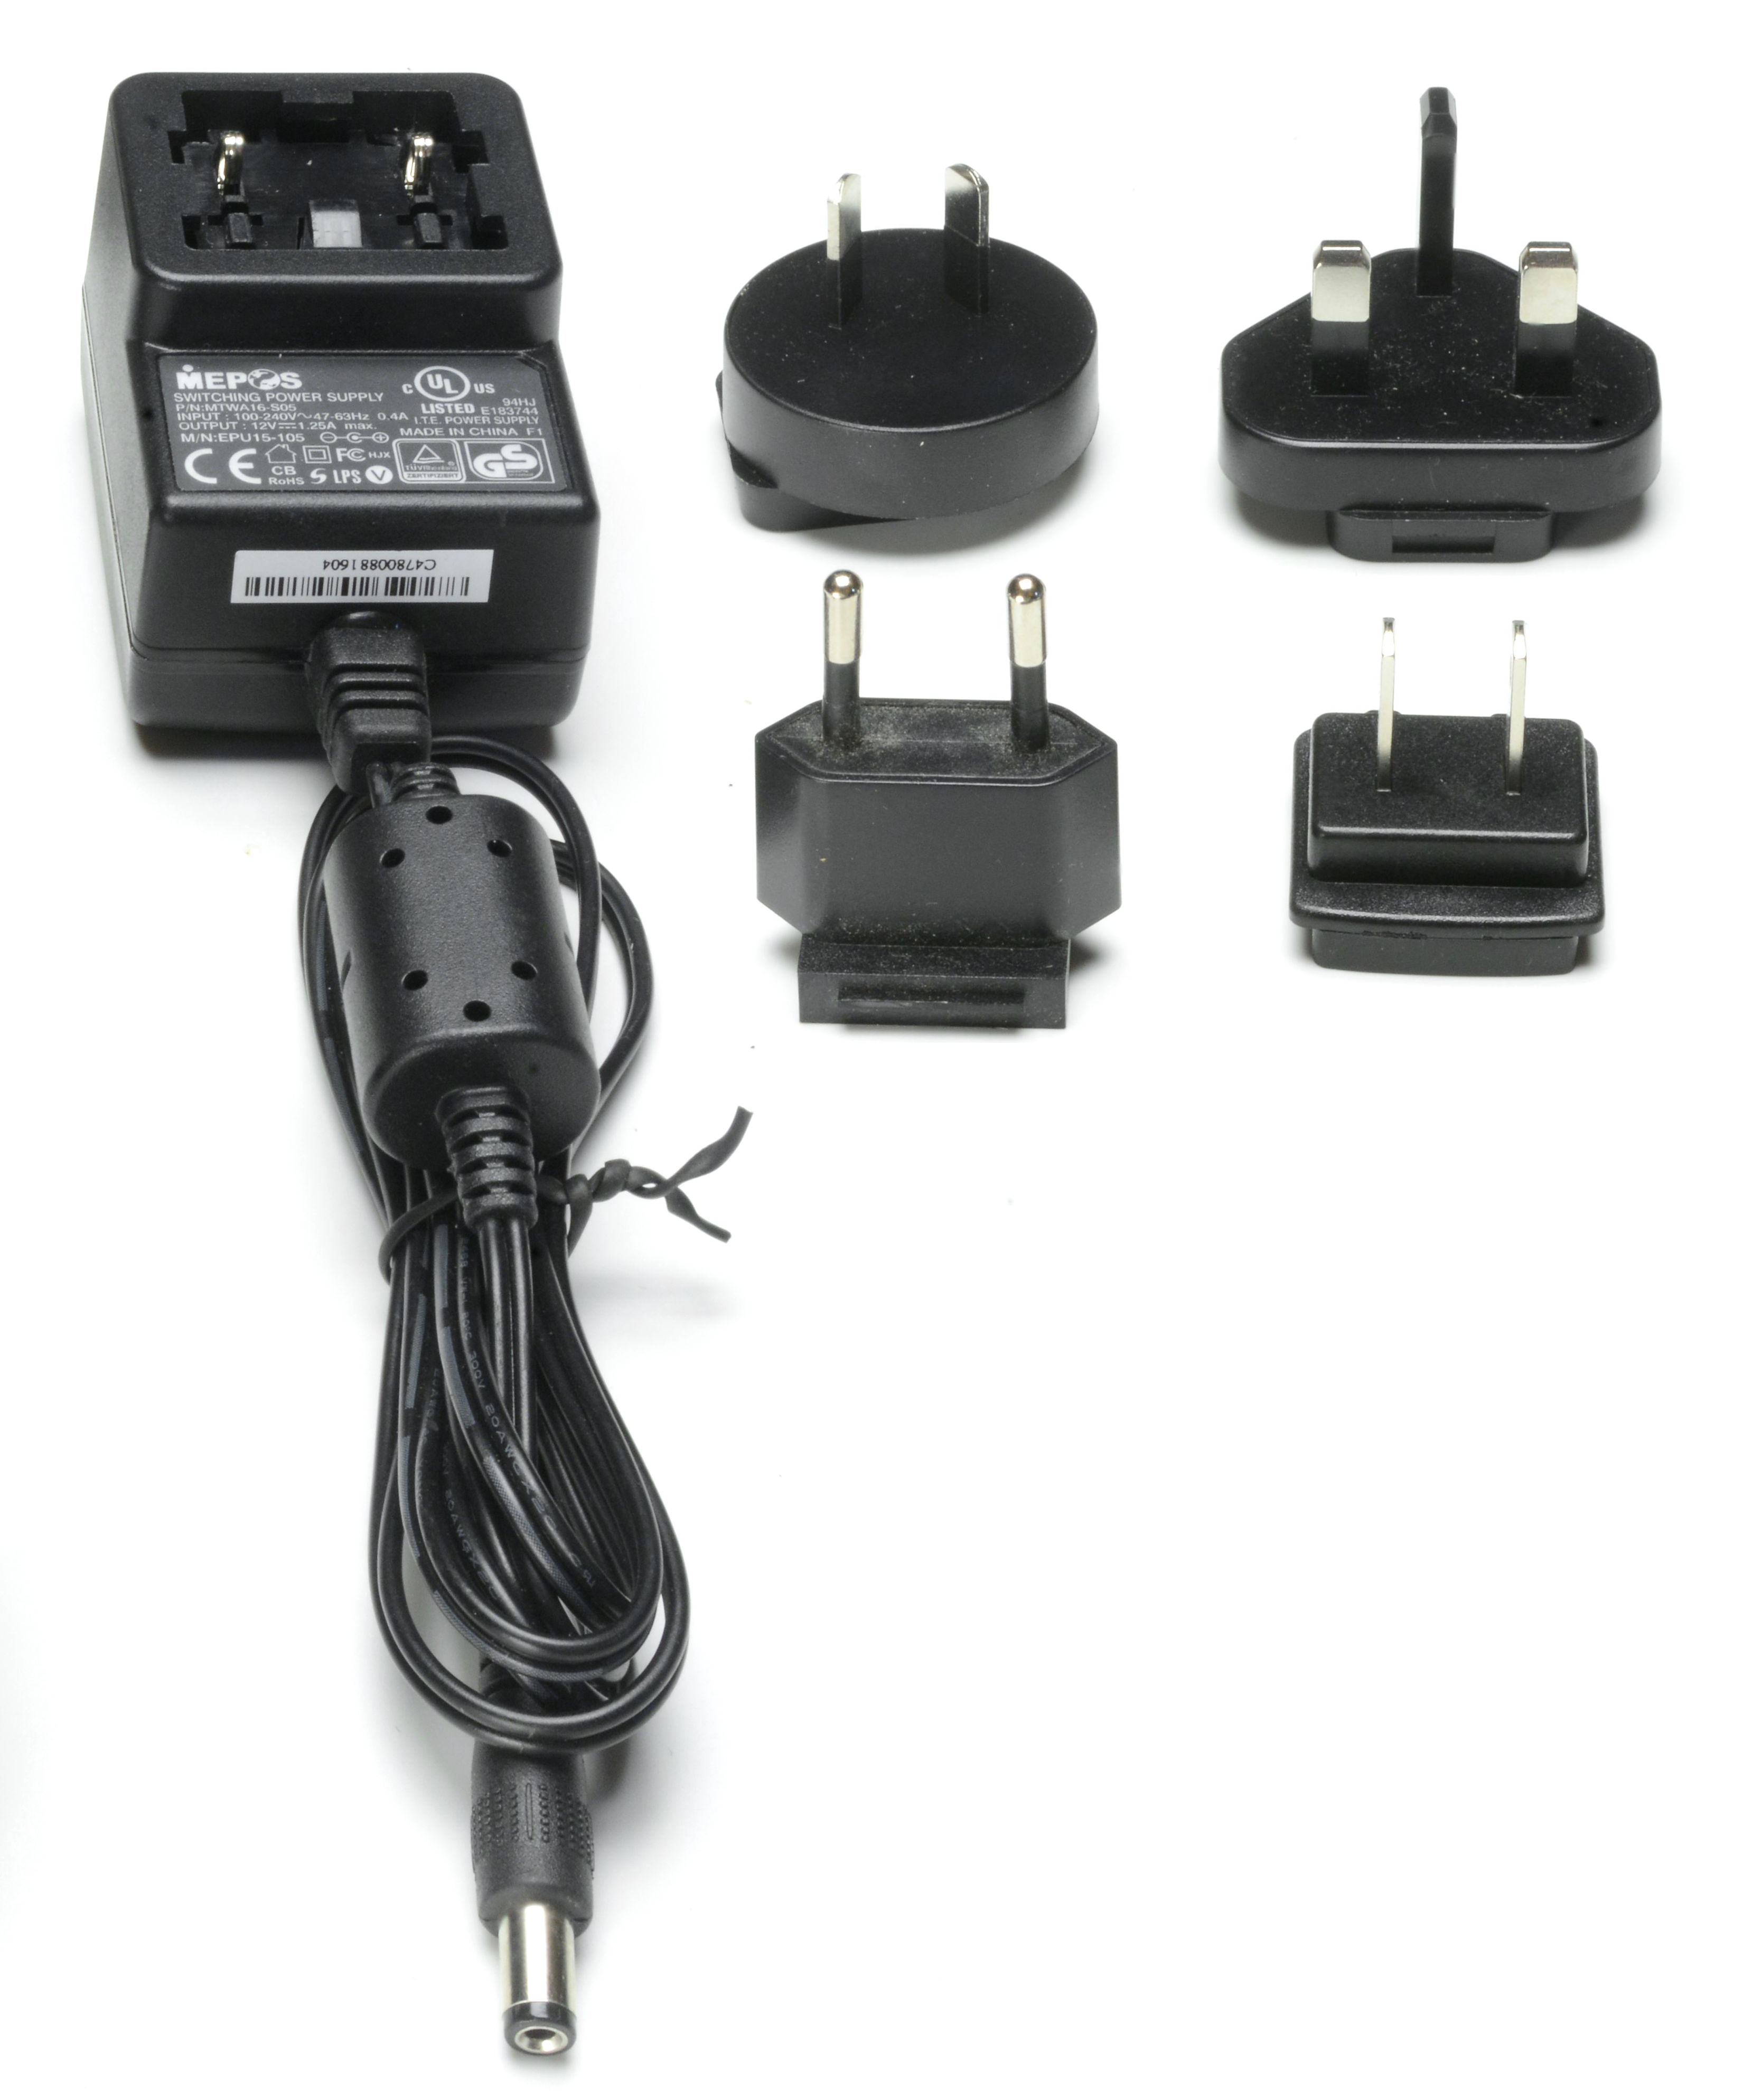 5627 - Multiverse SHoW Baby 12VDC Power Supply with plug kit